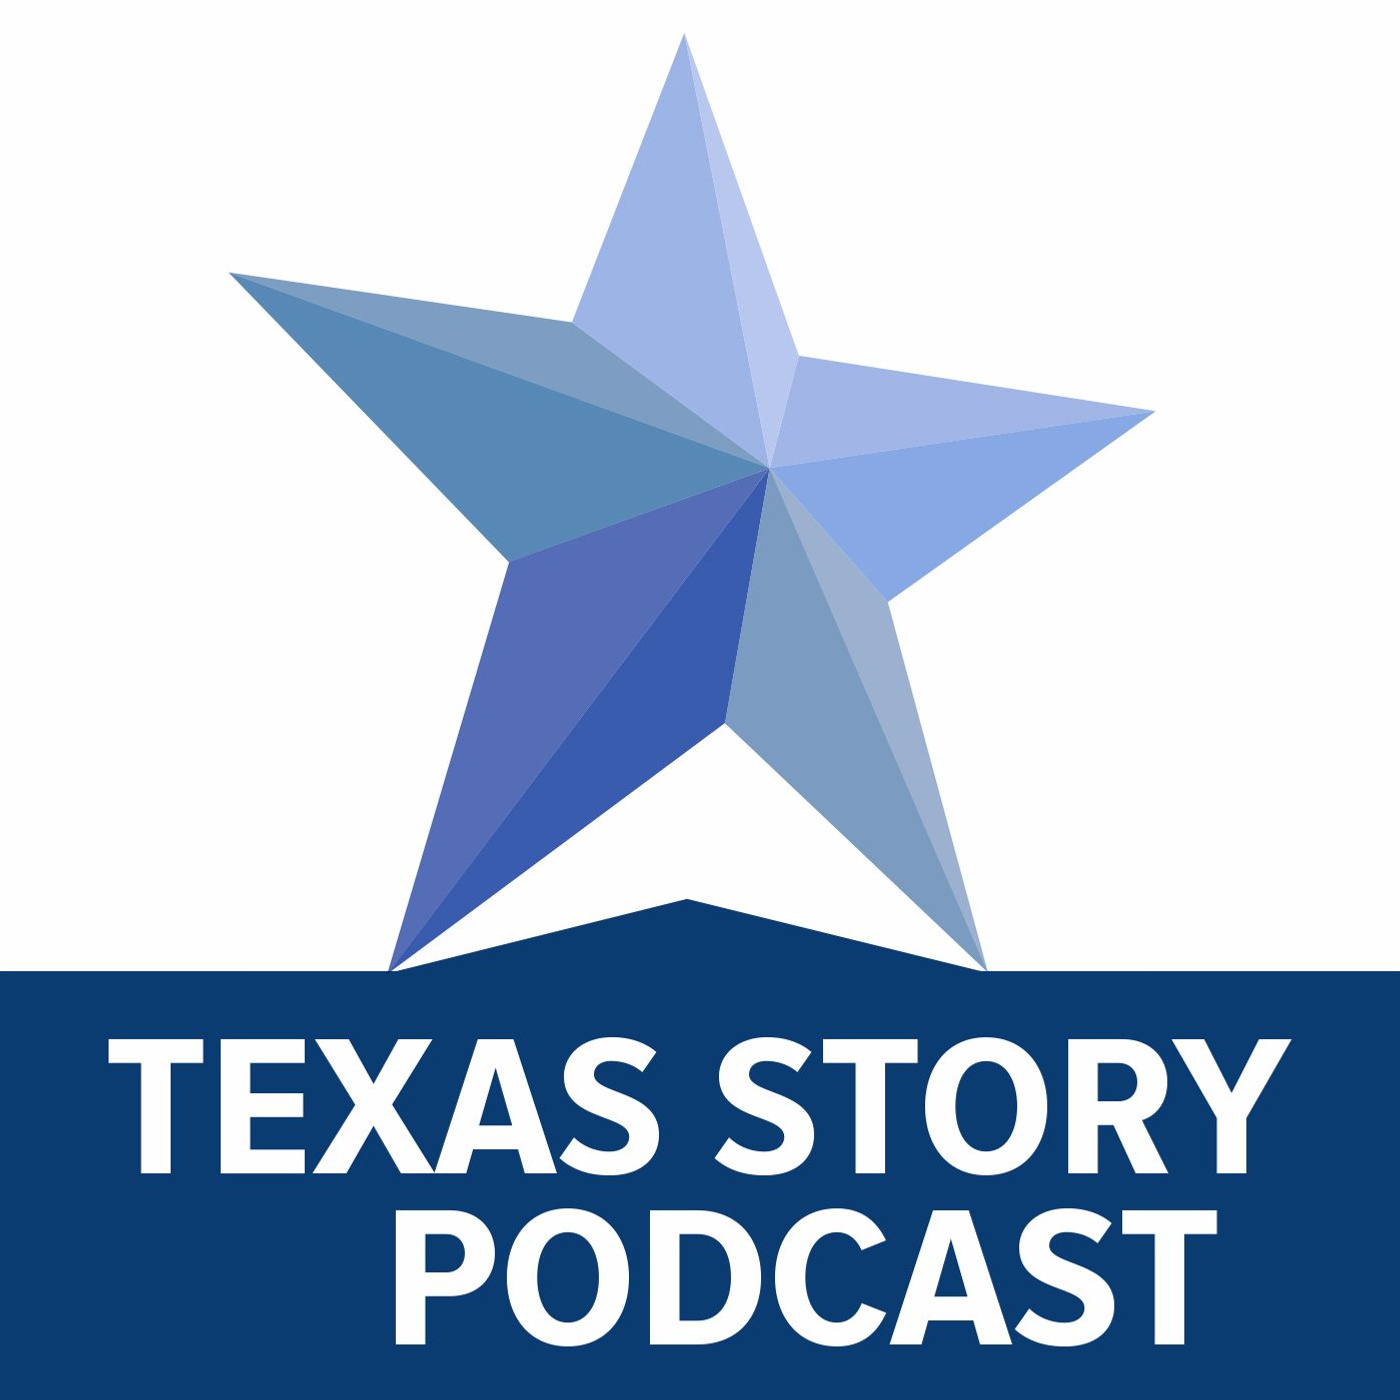 Episode 1 // Stevie Ray Vaughan: A Texas Story Podcast